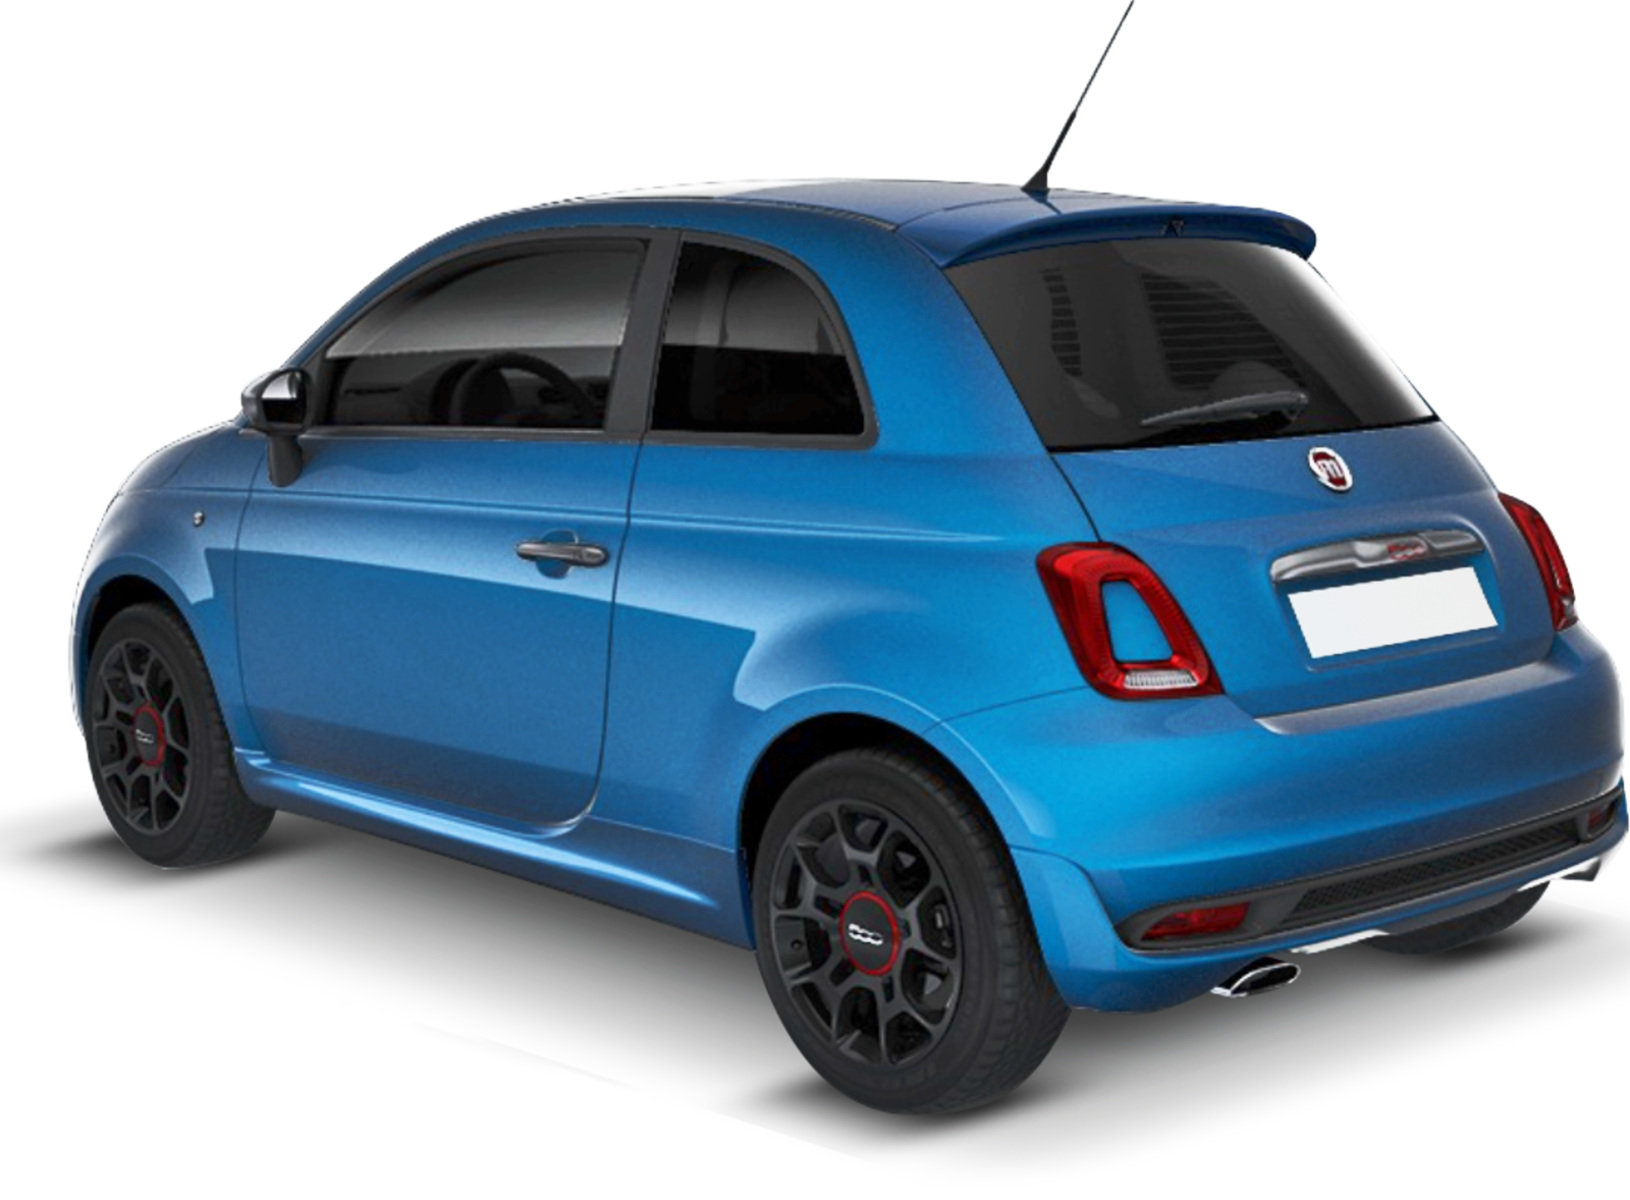 fiat 500 sport with Fiat 500 on 150 Angleterre as well 5 79592 22211727 besides 2cv Custom Et Tuning 109549p1 likewise La Fiat Tipo Tcr Corre Sulla Pista Di Adria In Vista Del C ionato Tcr 2018 besides Fiat 500.